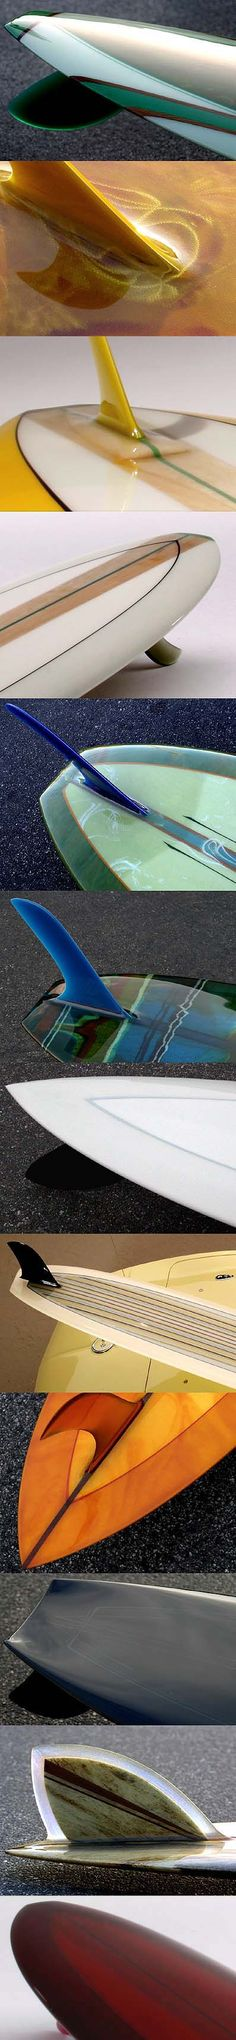 Cooperfish Surfboards so cooool!!! geen